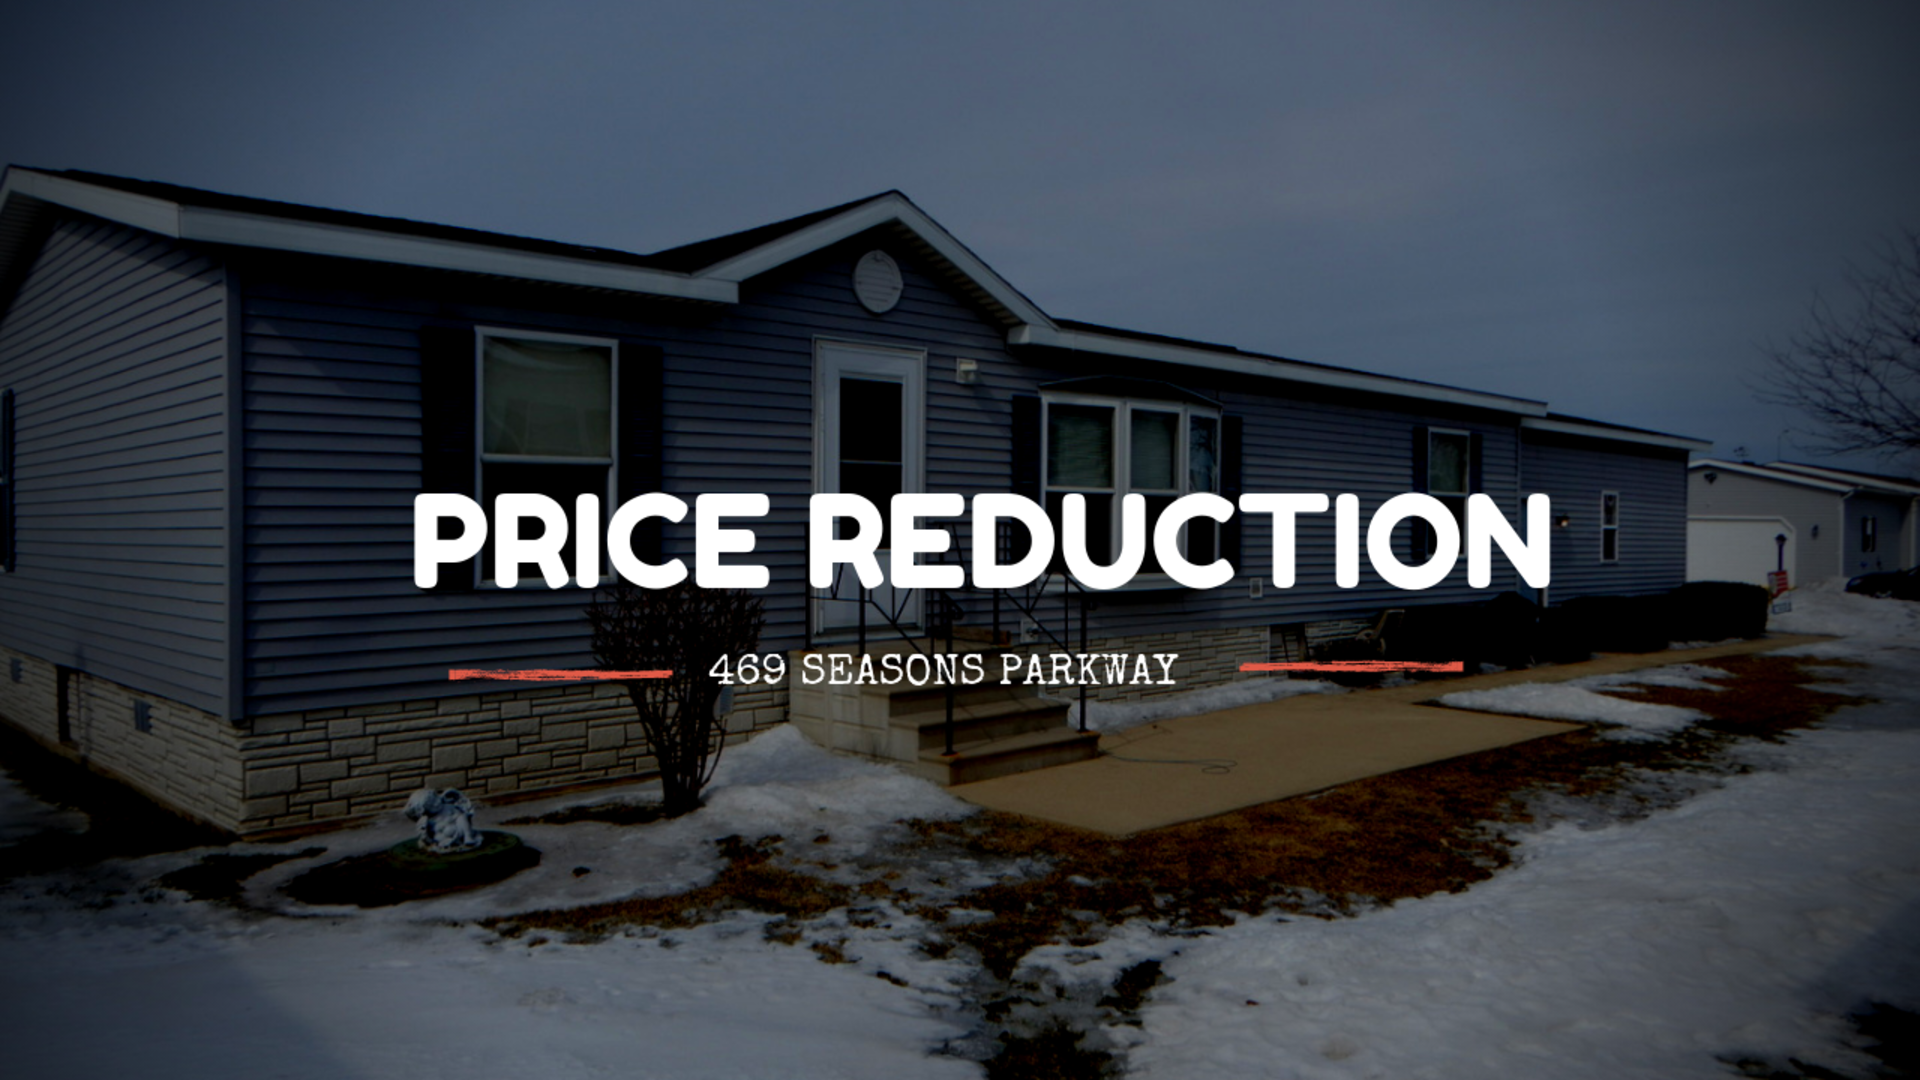 Price Reduction: March 14th 2019